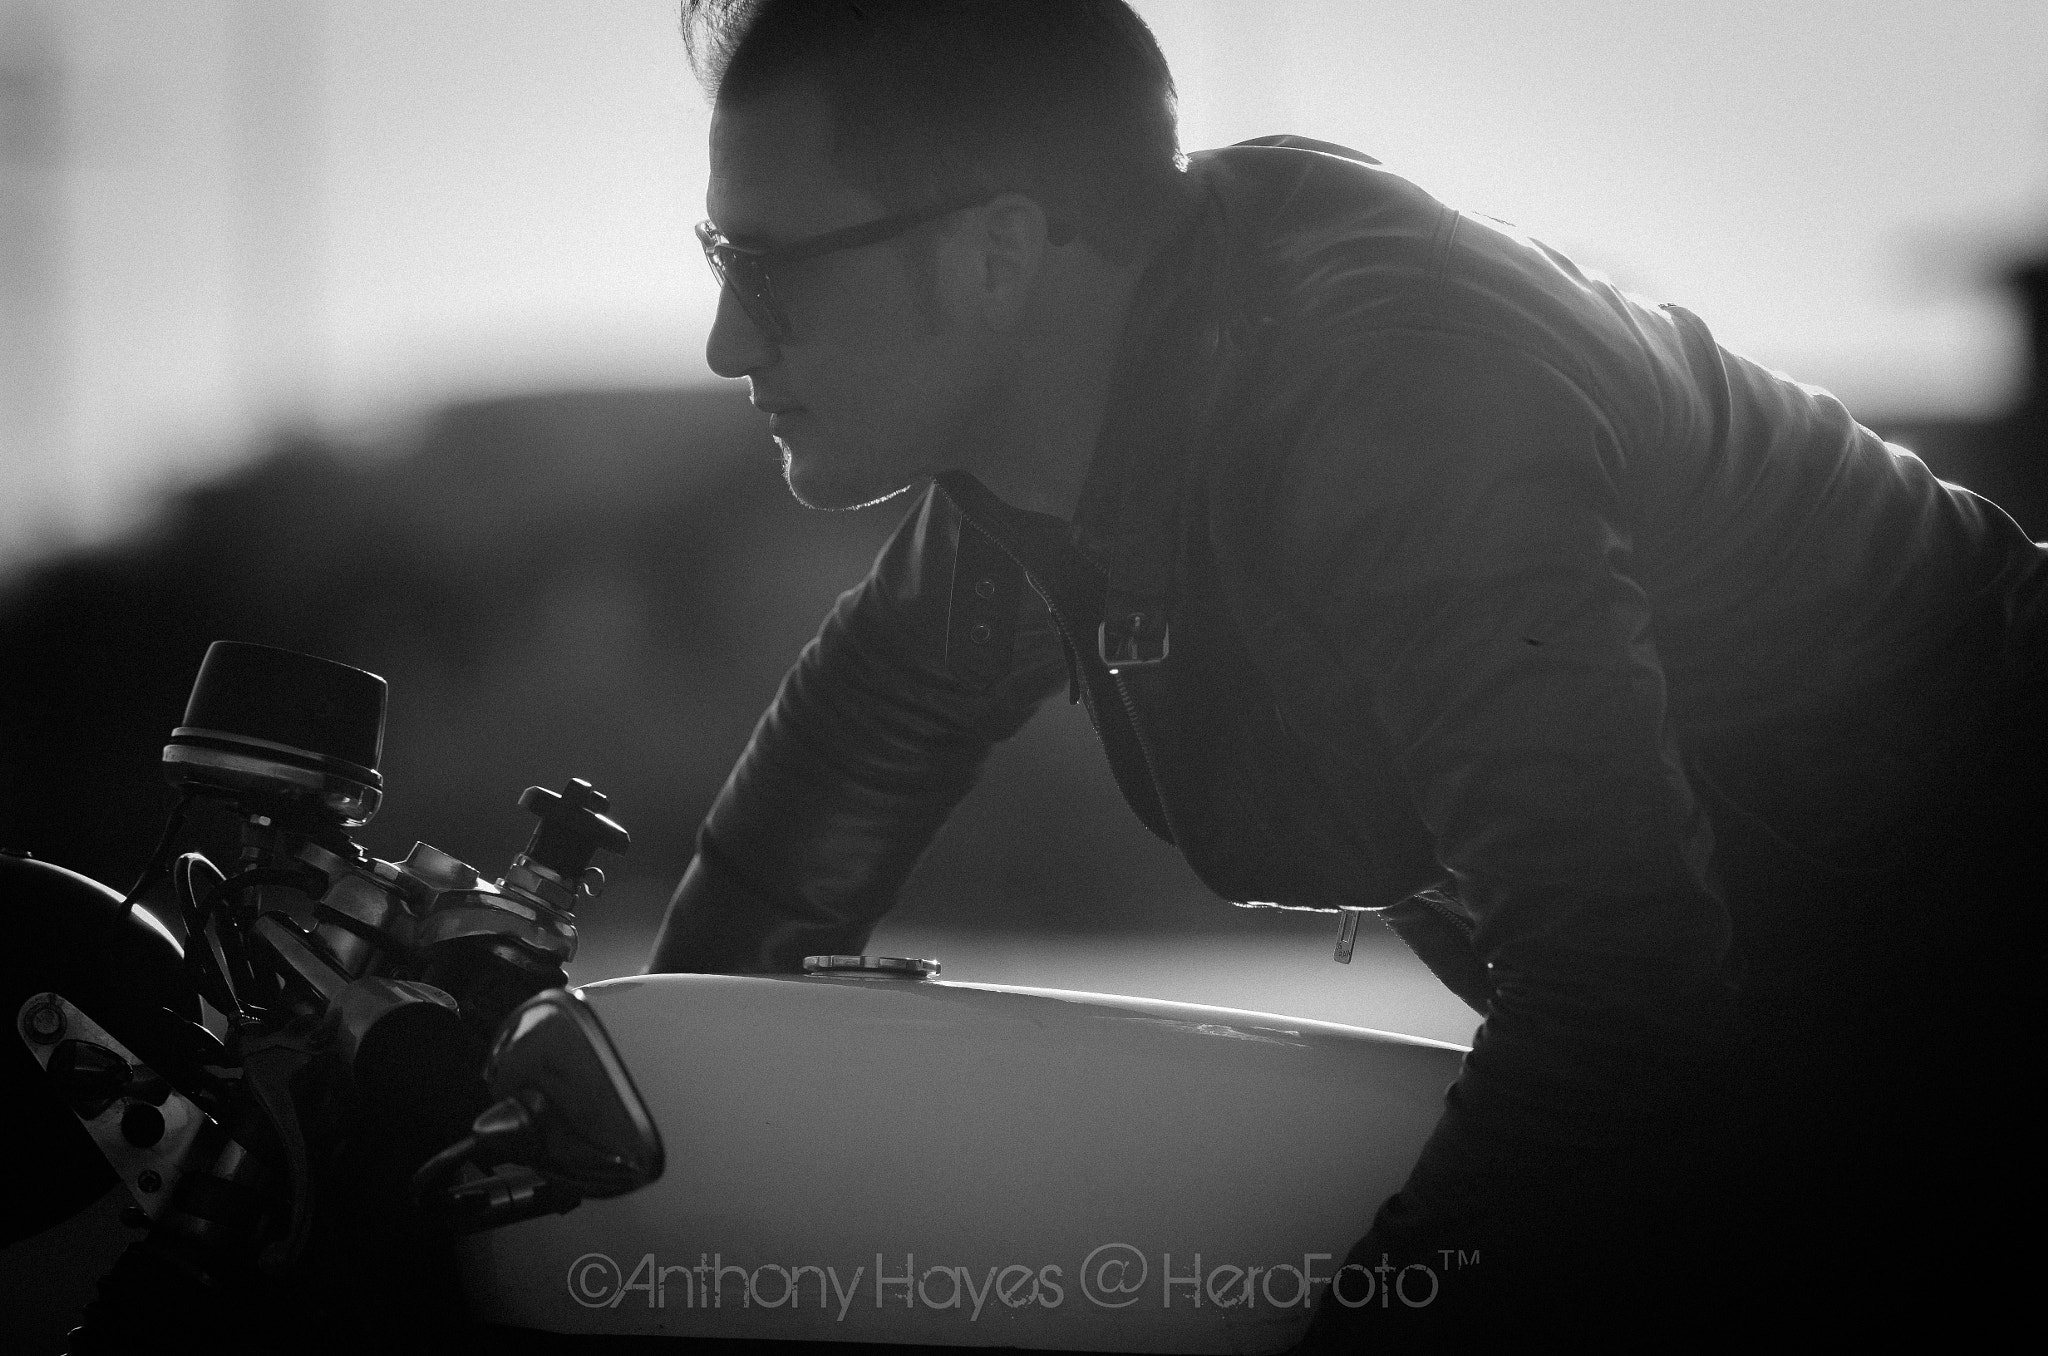 Photograph Rider by Anthony Hayes on 500px